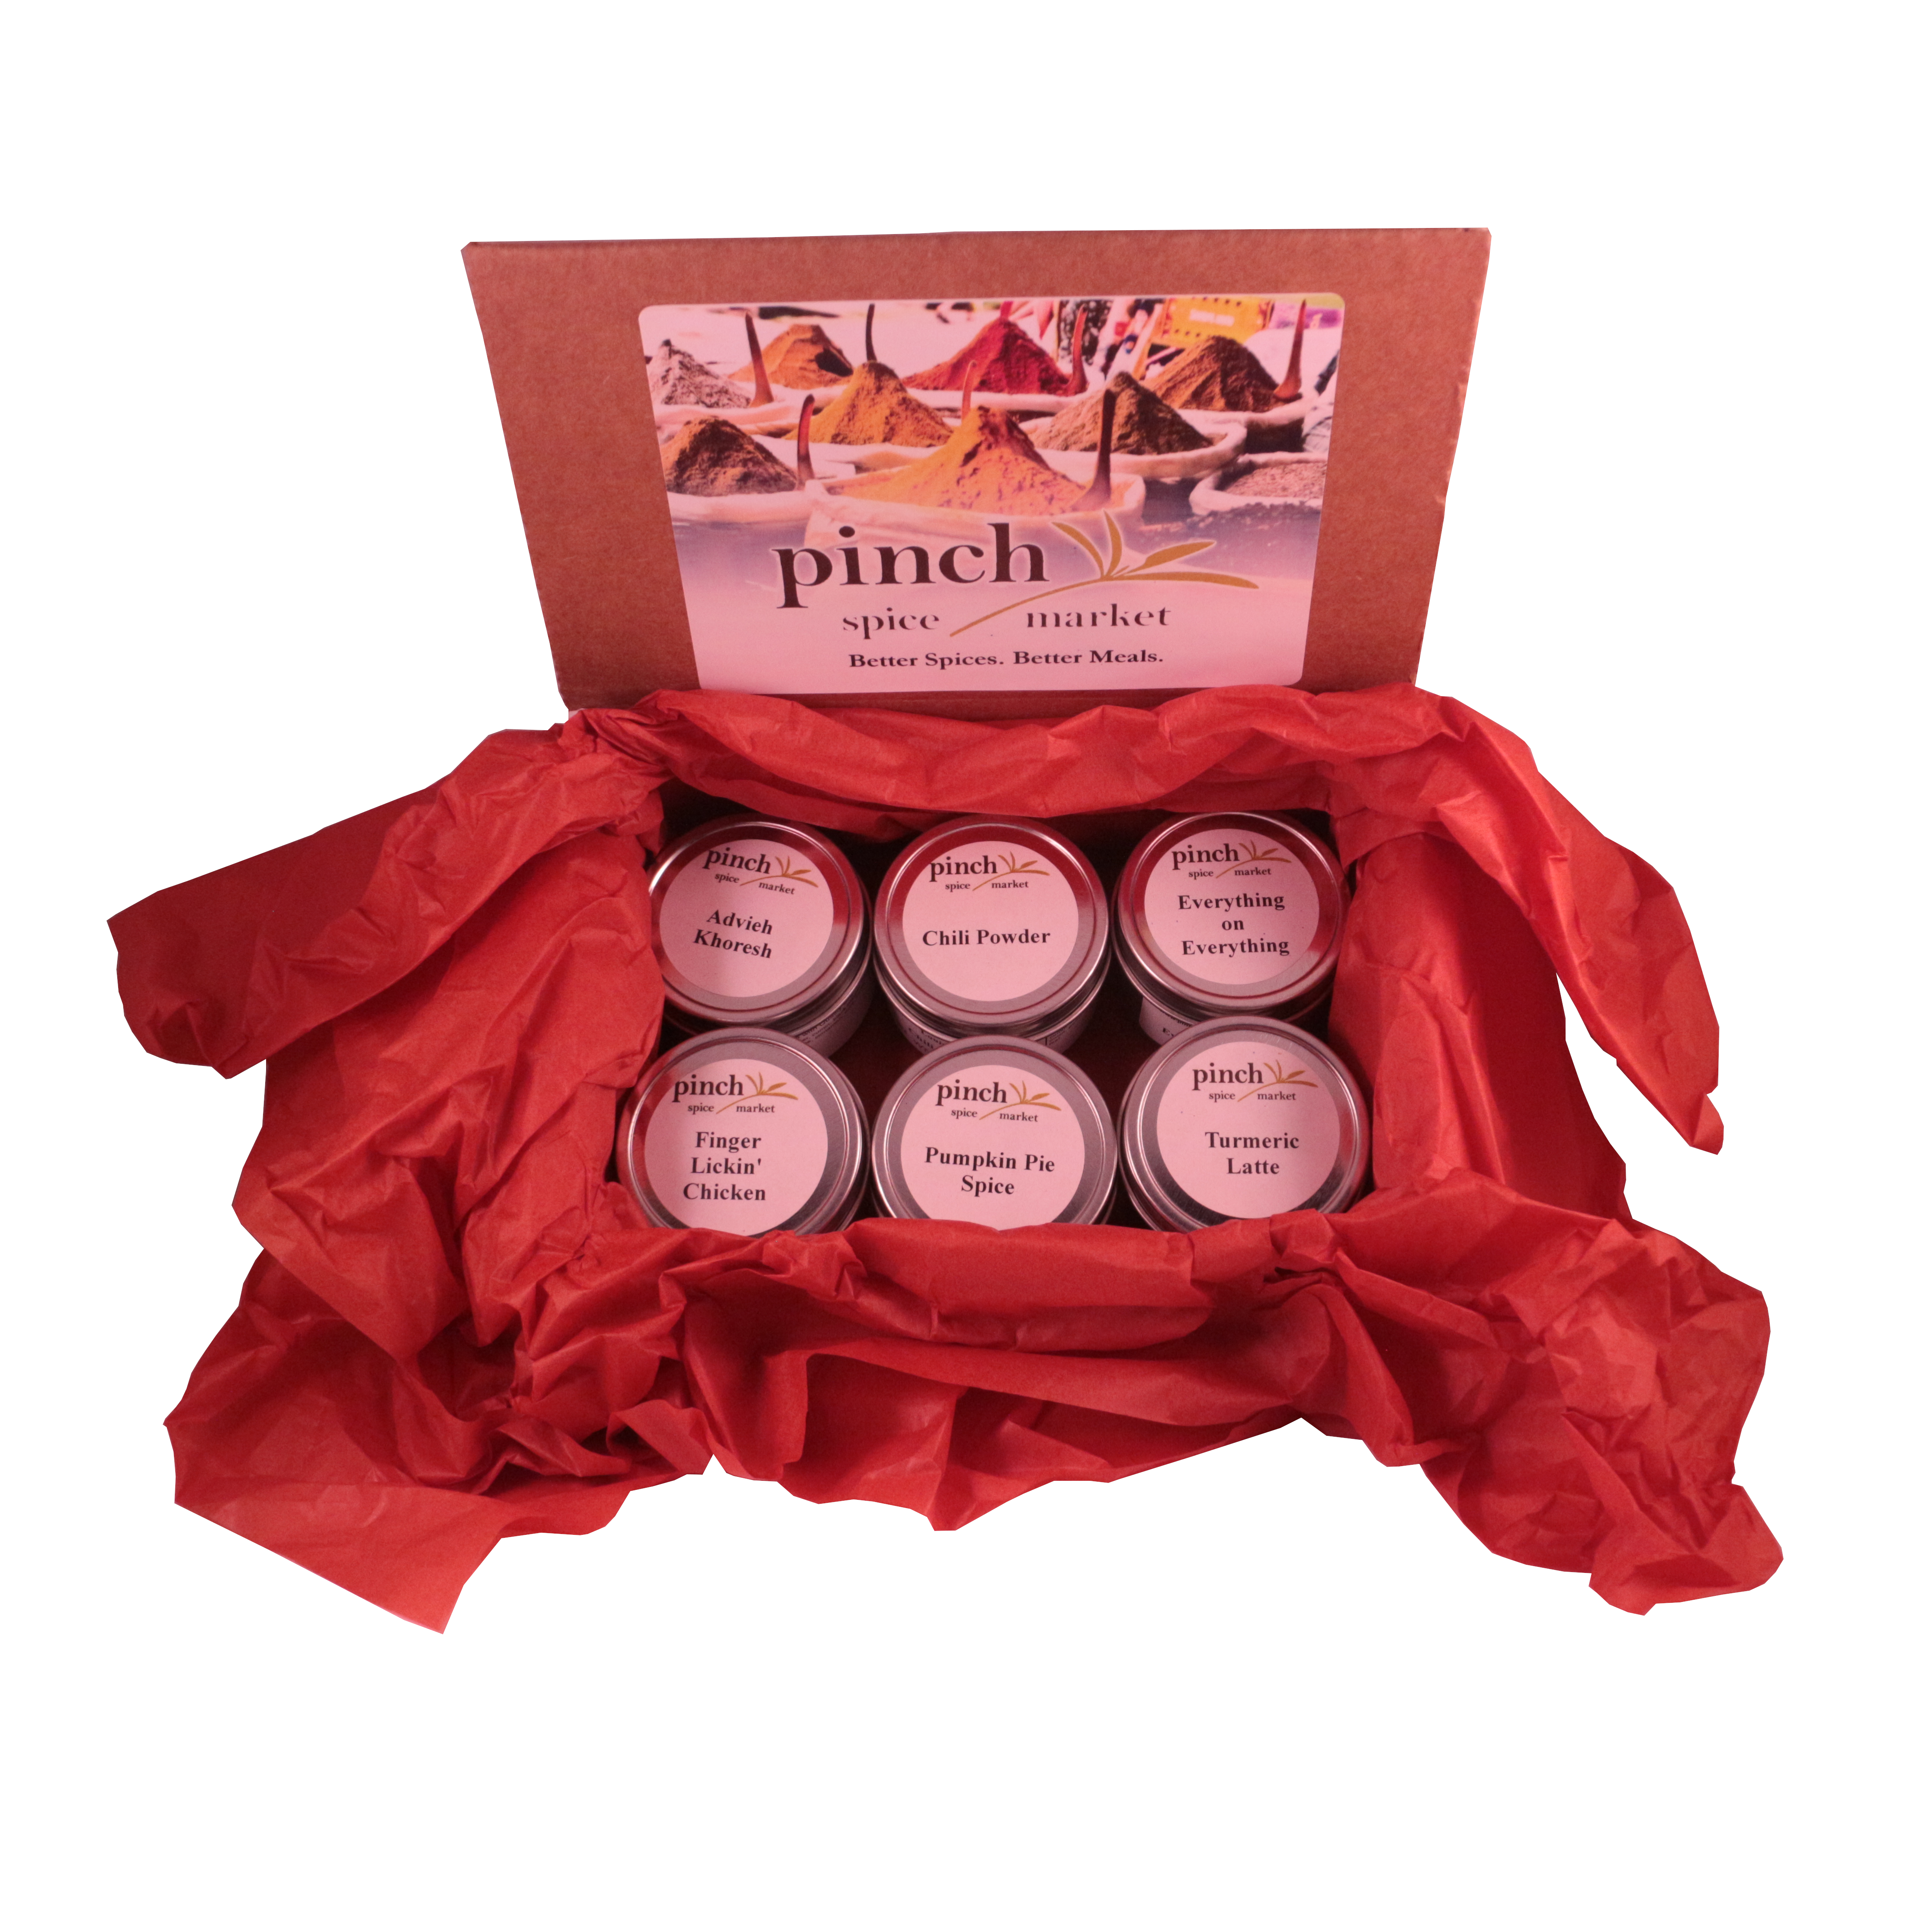 spice gift set for fall